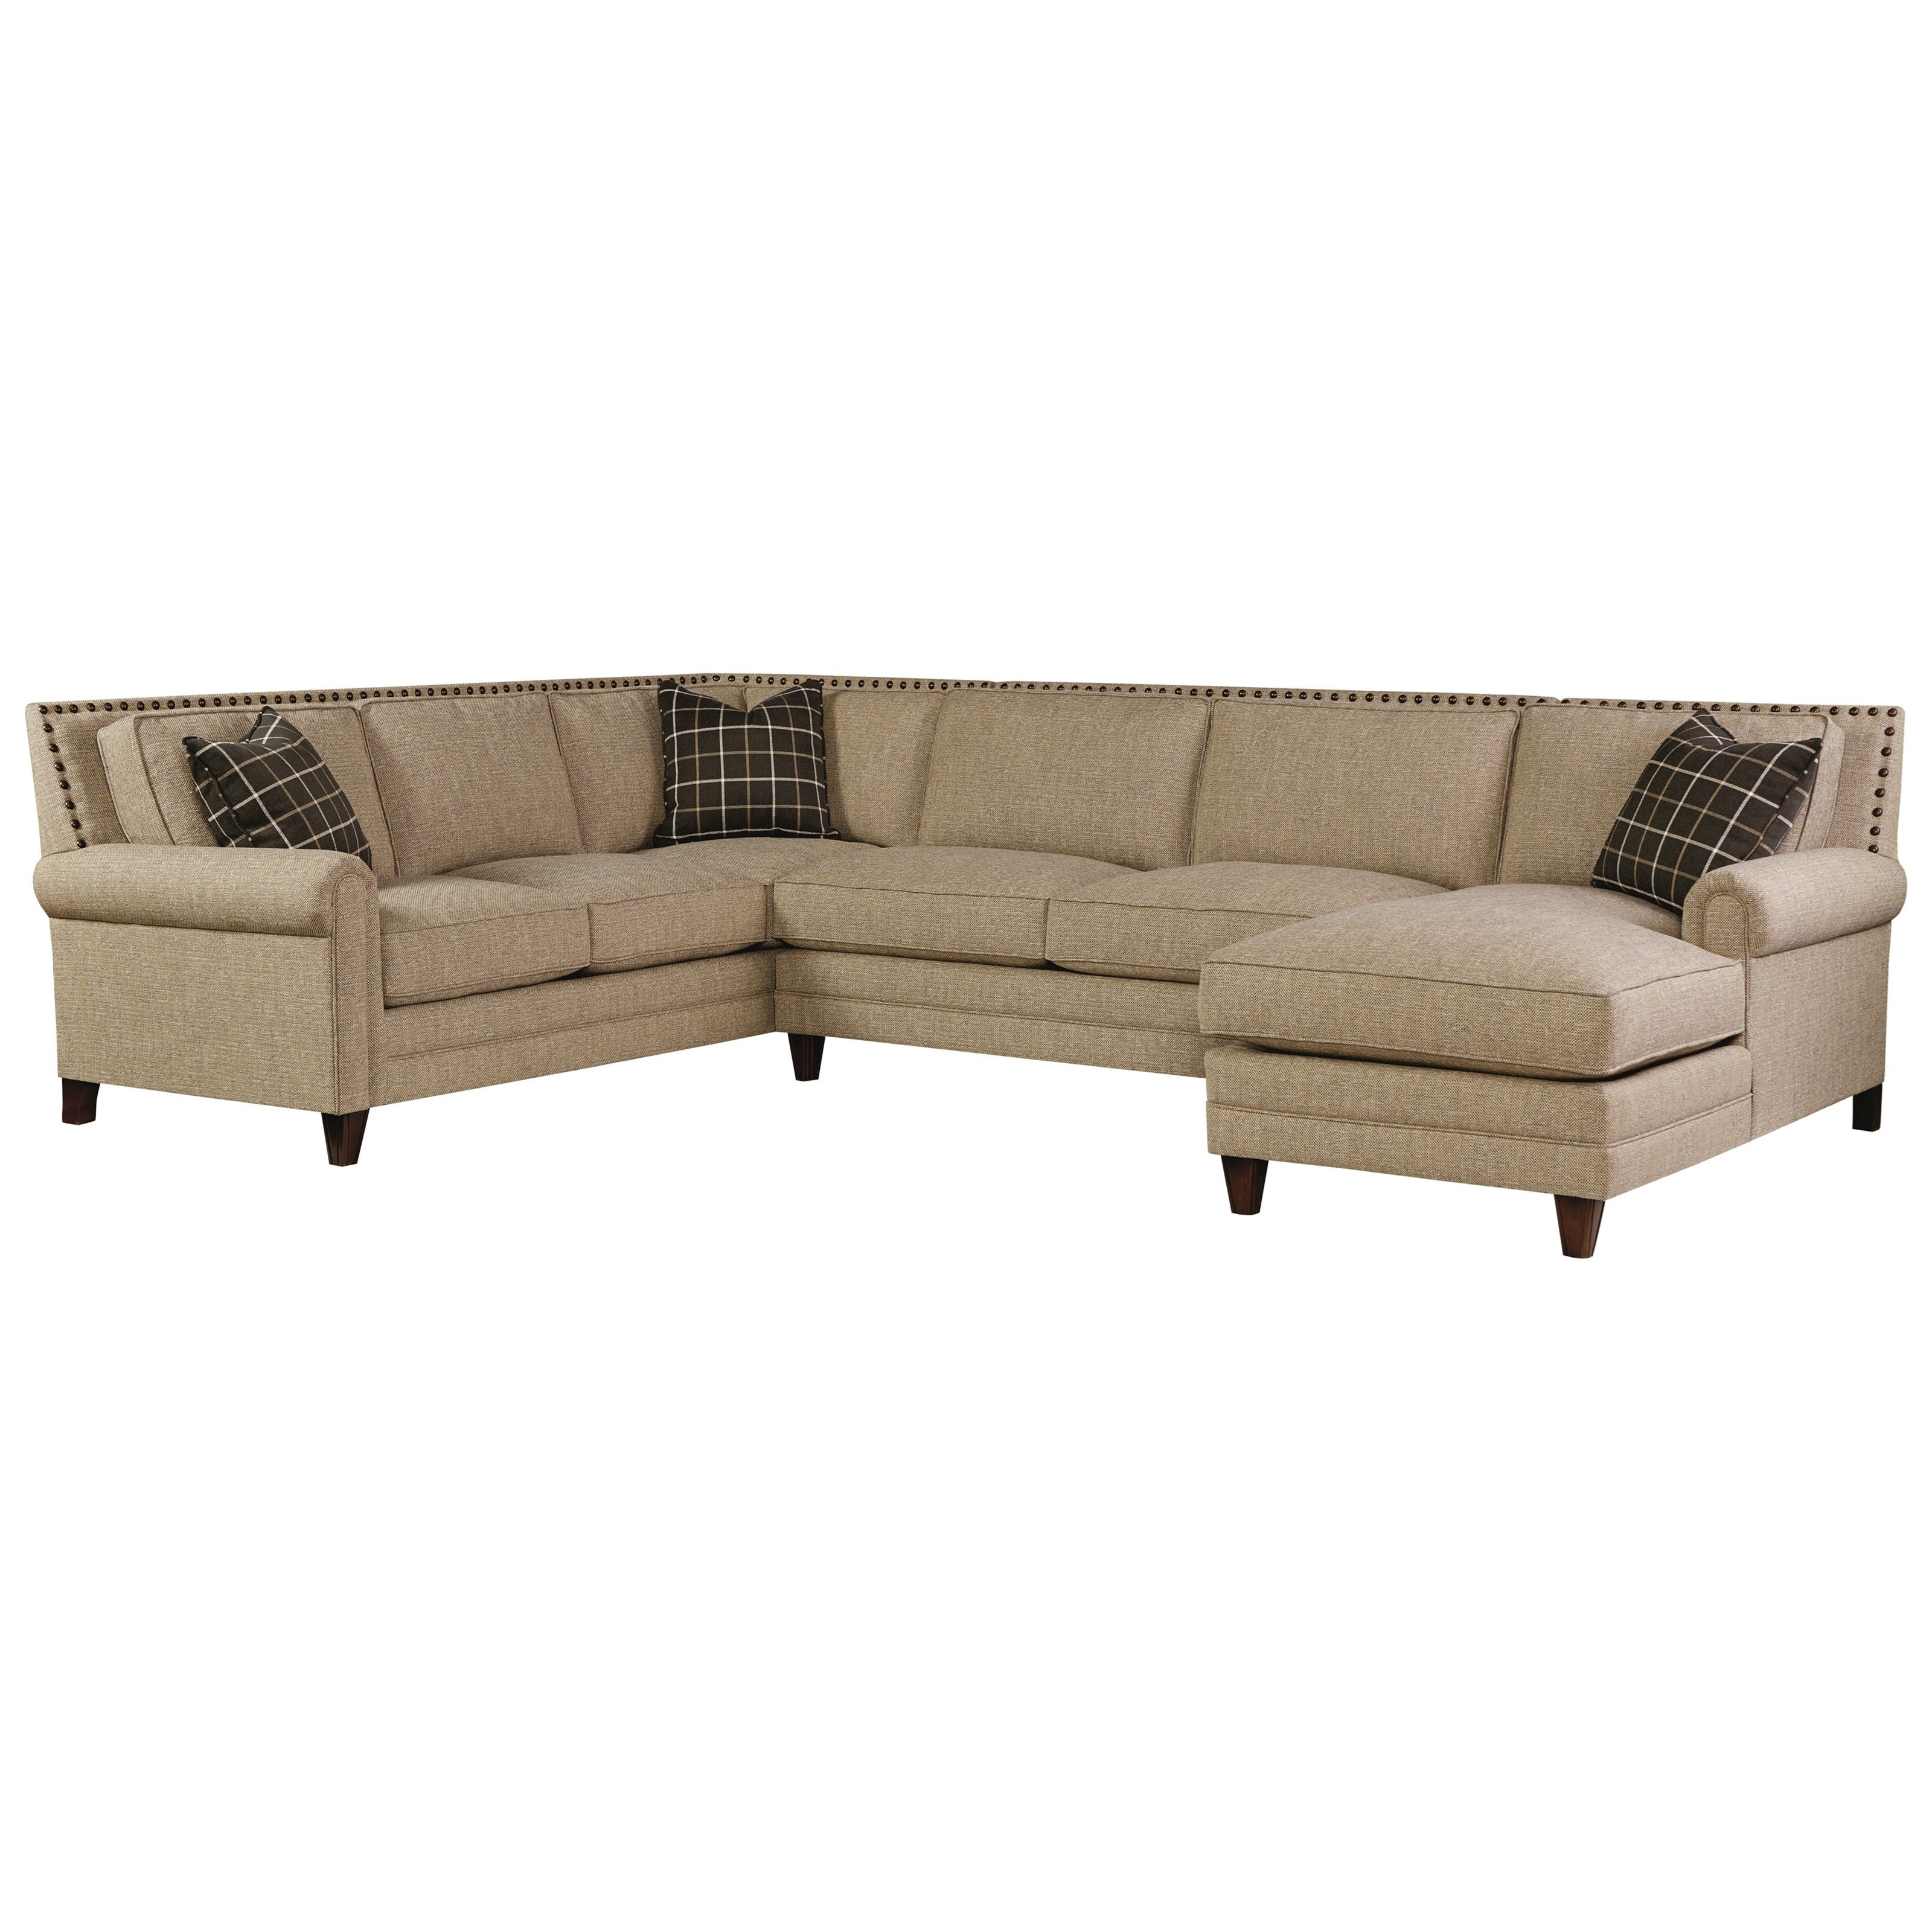 Bassett harlan sectional sofa with 5 seats 1 is a chaise for Sectional sofa seats 6